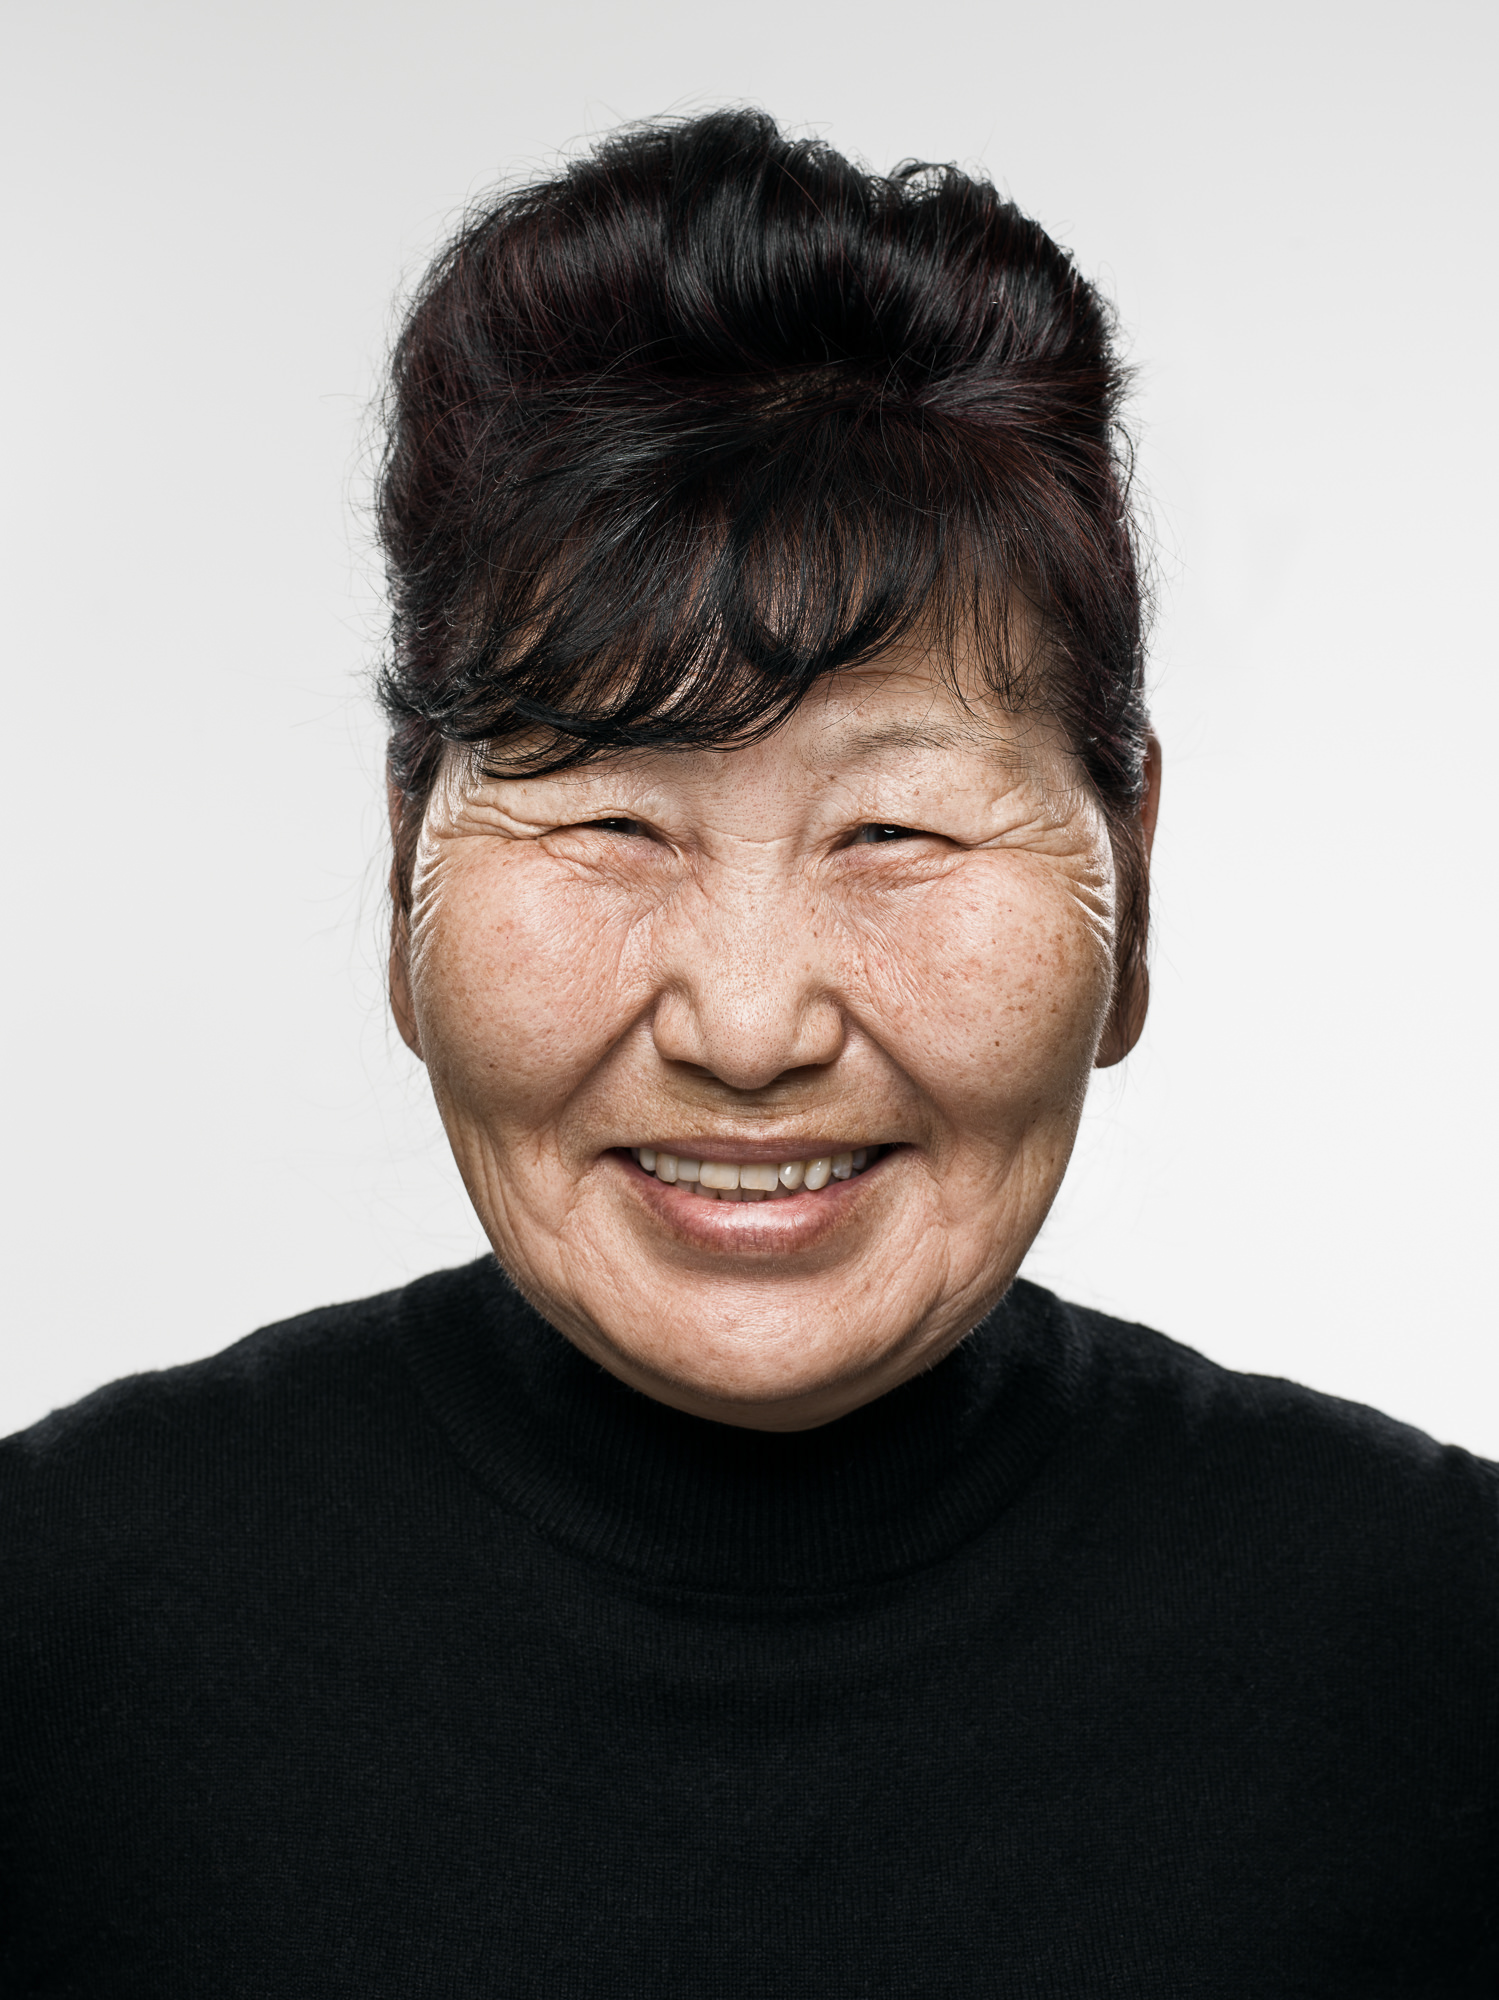 - The Journey to switzerlandKhajidmaa Tumen - my mother-in-law - arrived from the Mongolian steppe to assist us before and after the birth of our son Aeron. I took this opportunity to dedicate a photographic homage to this wonderful woman.